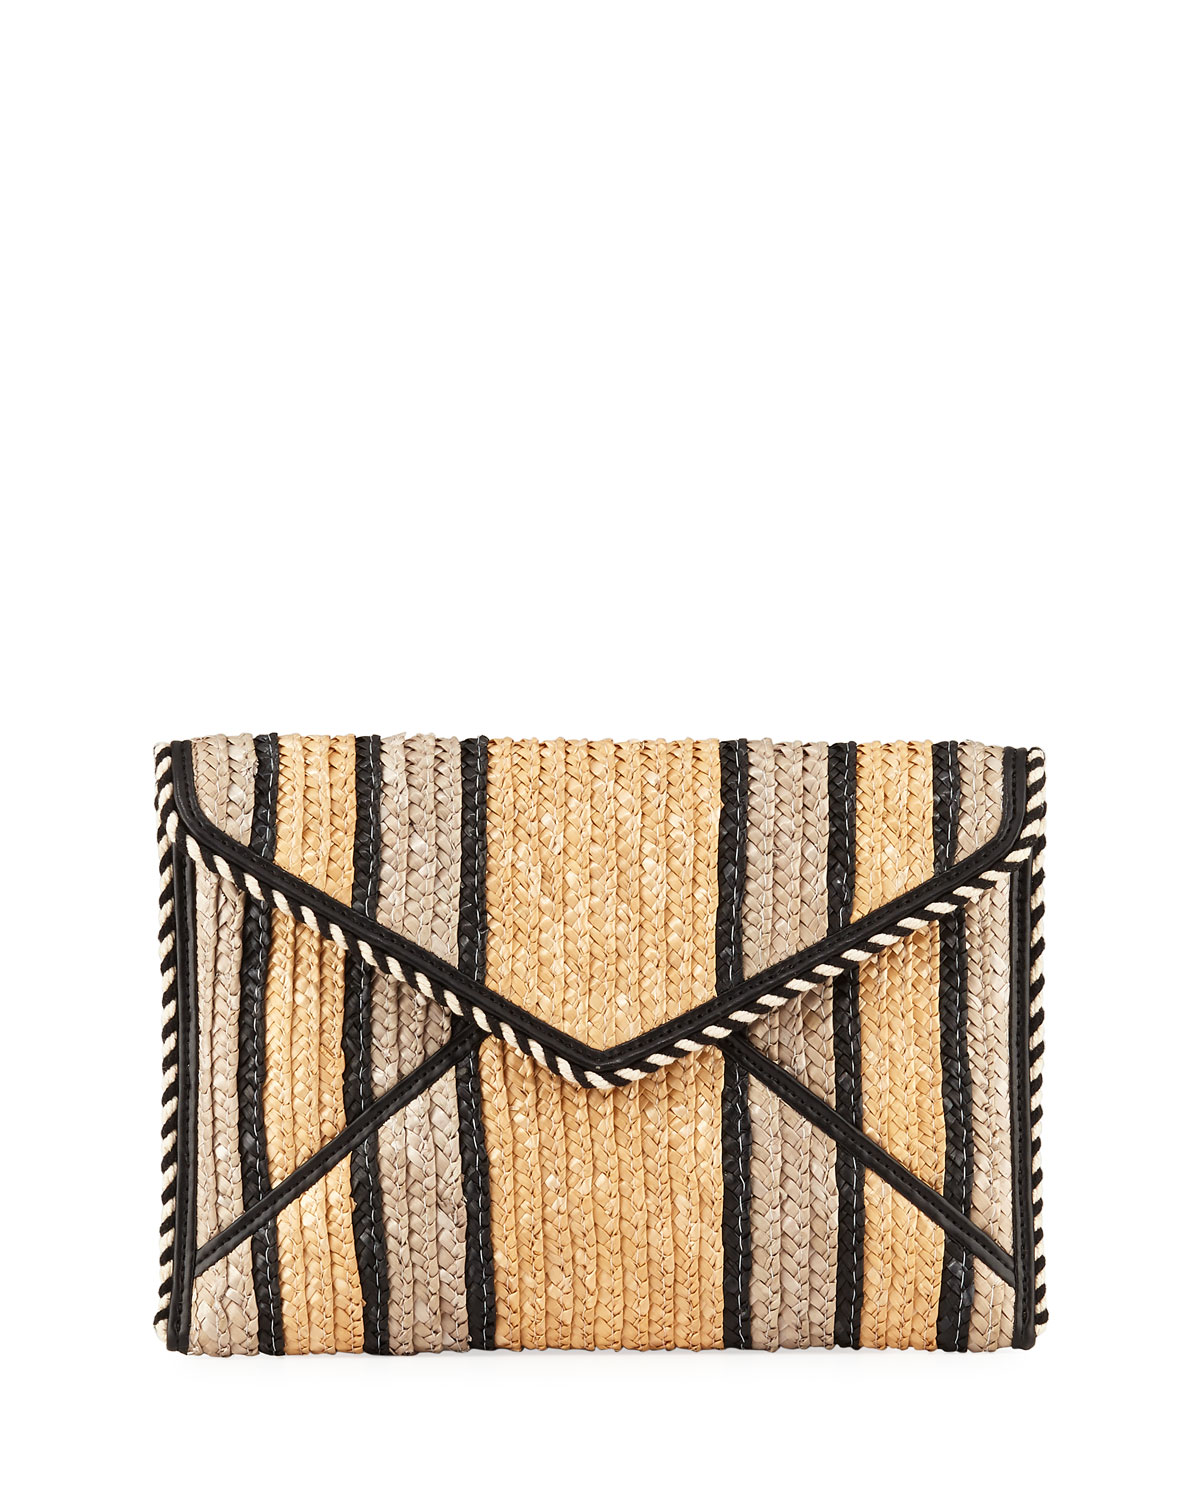 Leo Striped Straw Clutch Bag